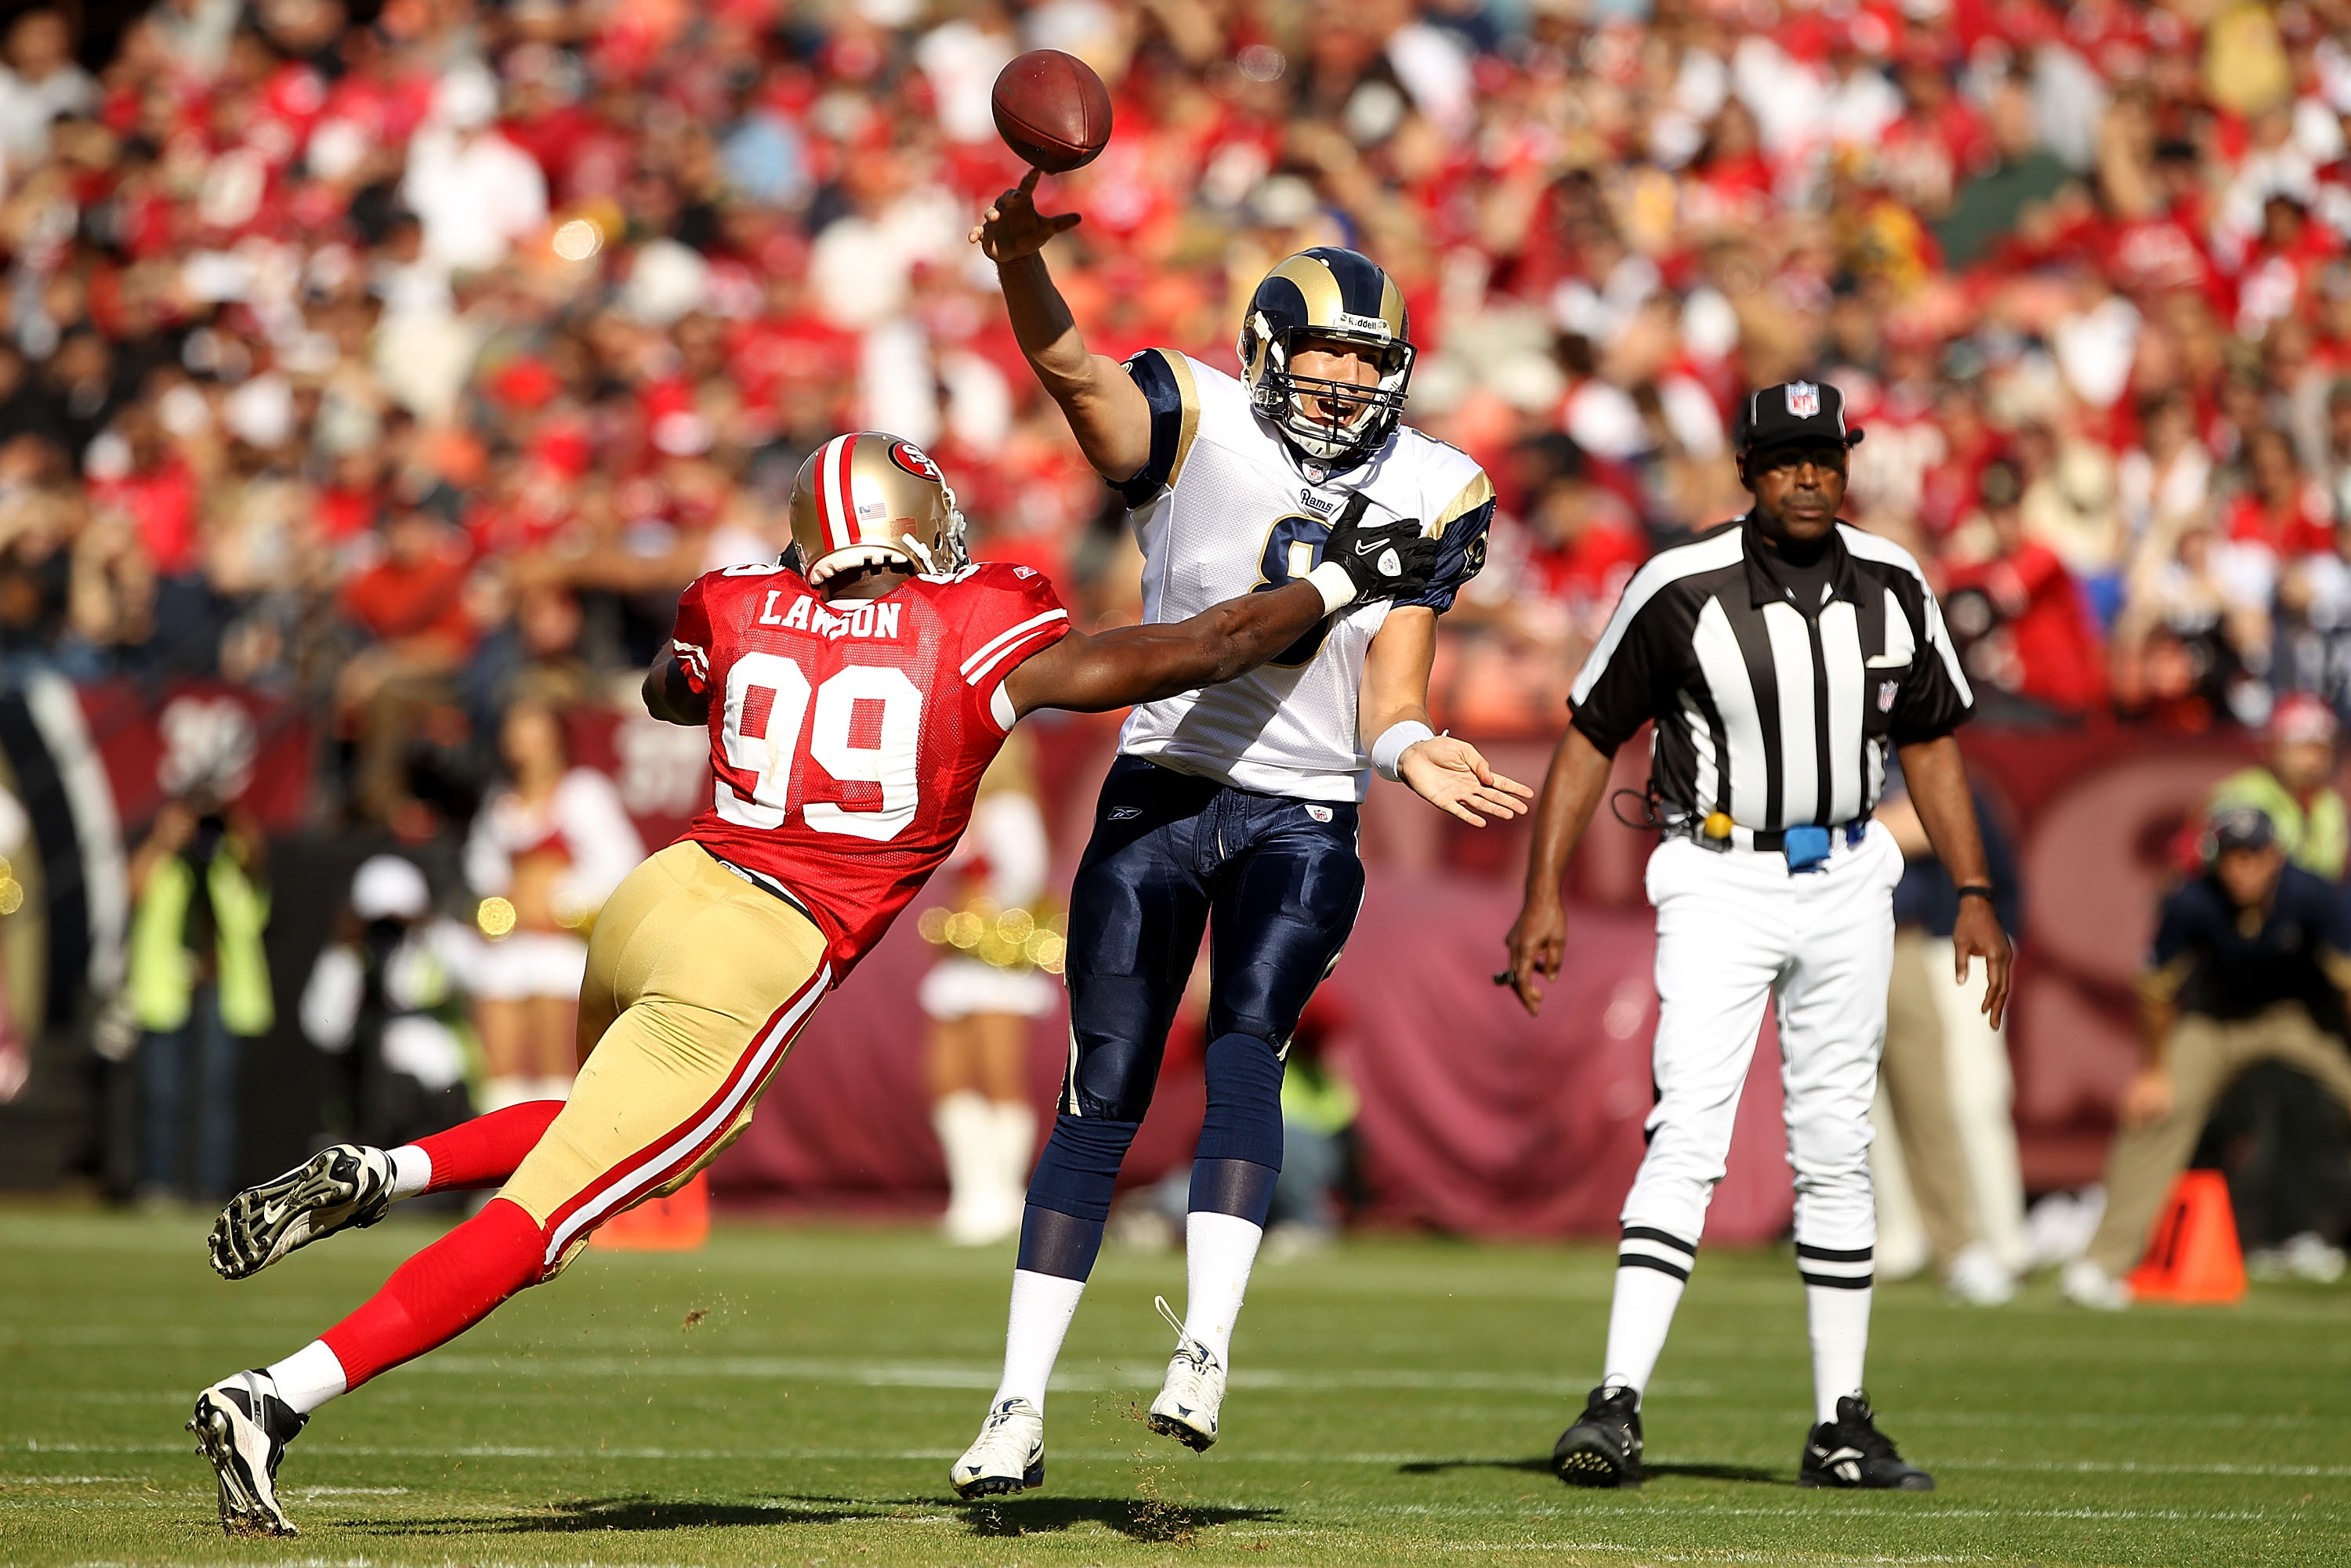 SAN FRANCISCO - NOVEMBER 14:  Sam Bradford #8 of the St. Louis Rams throws the ball as he is hit by Manny Lawson #99 of the San Francisco 49ers at Candlestick Park on November 14, 2010 in San Francisco, California.  (Photo by Ezra Shaw/Getty Images)